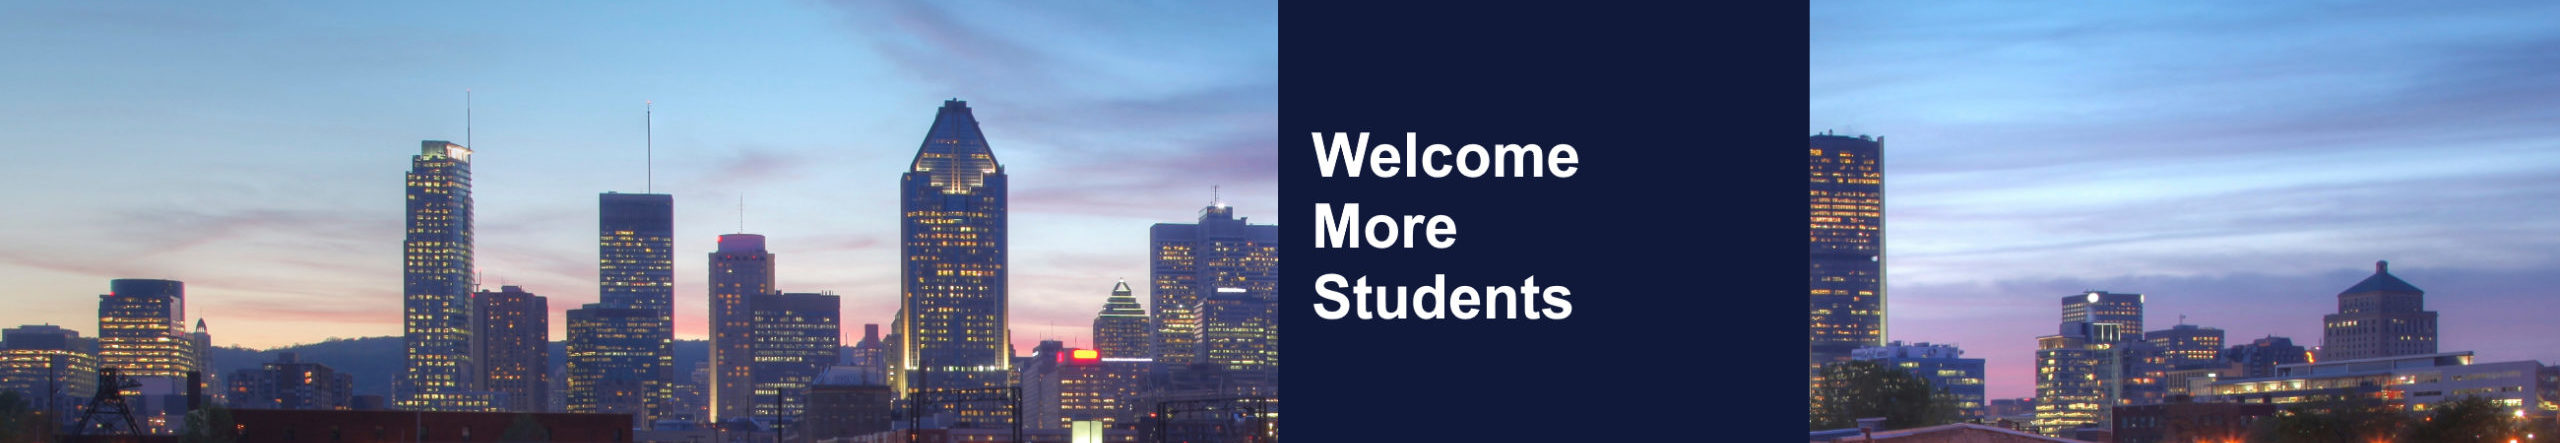 Welcome more students